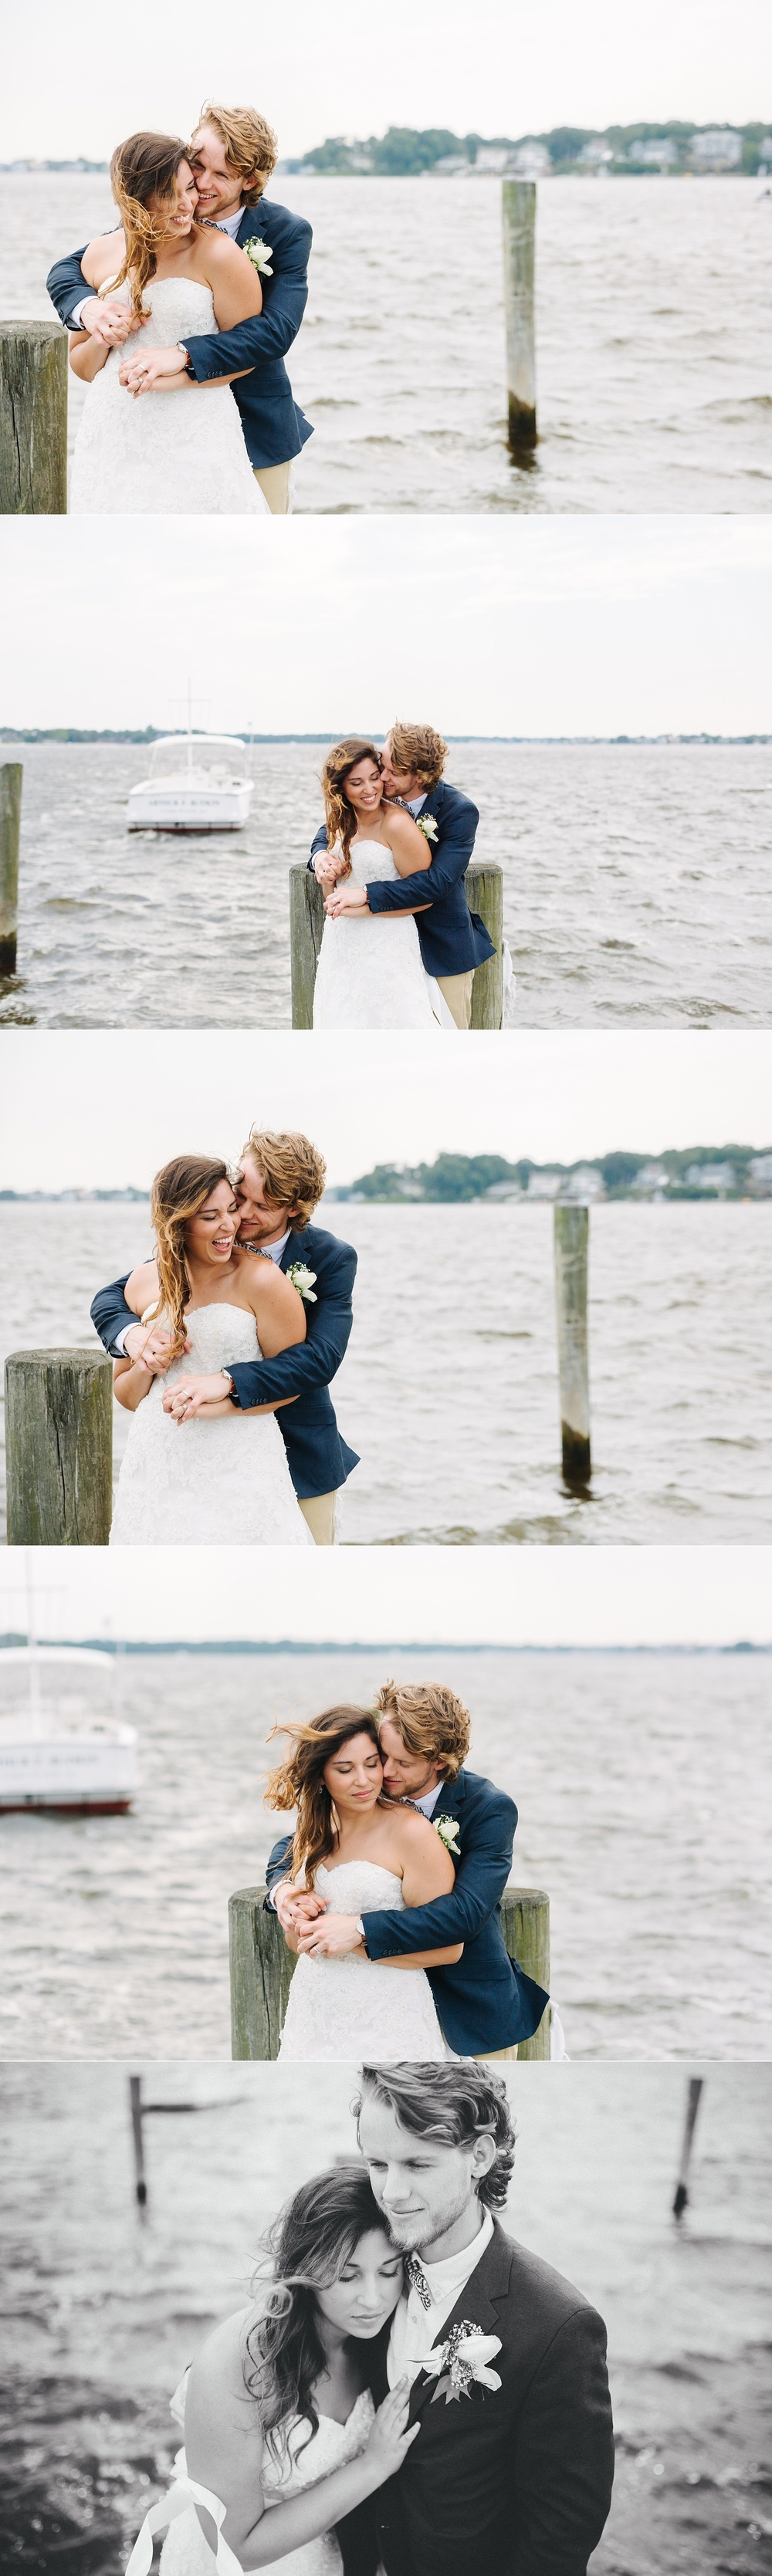 jake and katie photography toms river new jersery wedding jesse drea-25